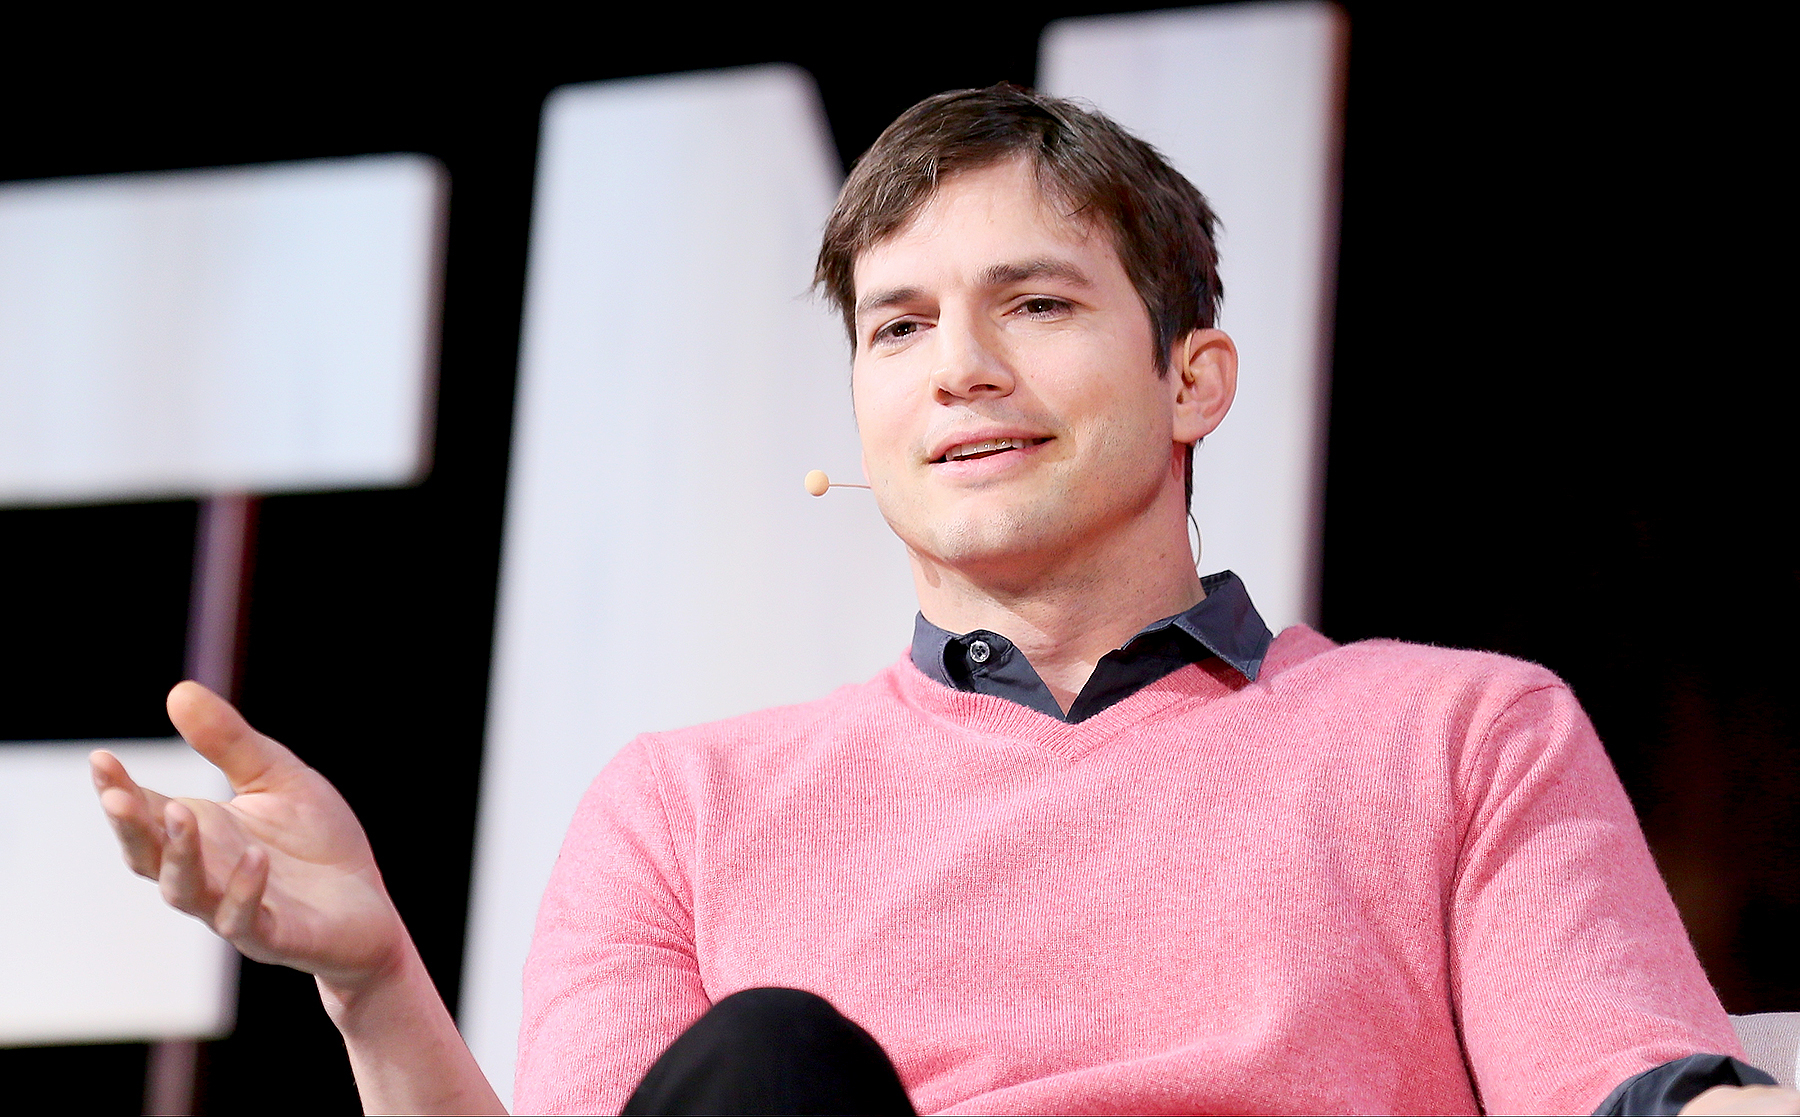 Ashton Kutcher speaks onstage at the 3rd Annual Airbnb Open Spotlight at the Orpheum on Nov. 19, 2016, in Los Angeles.